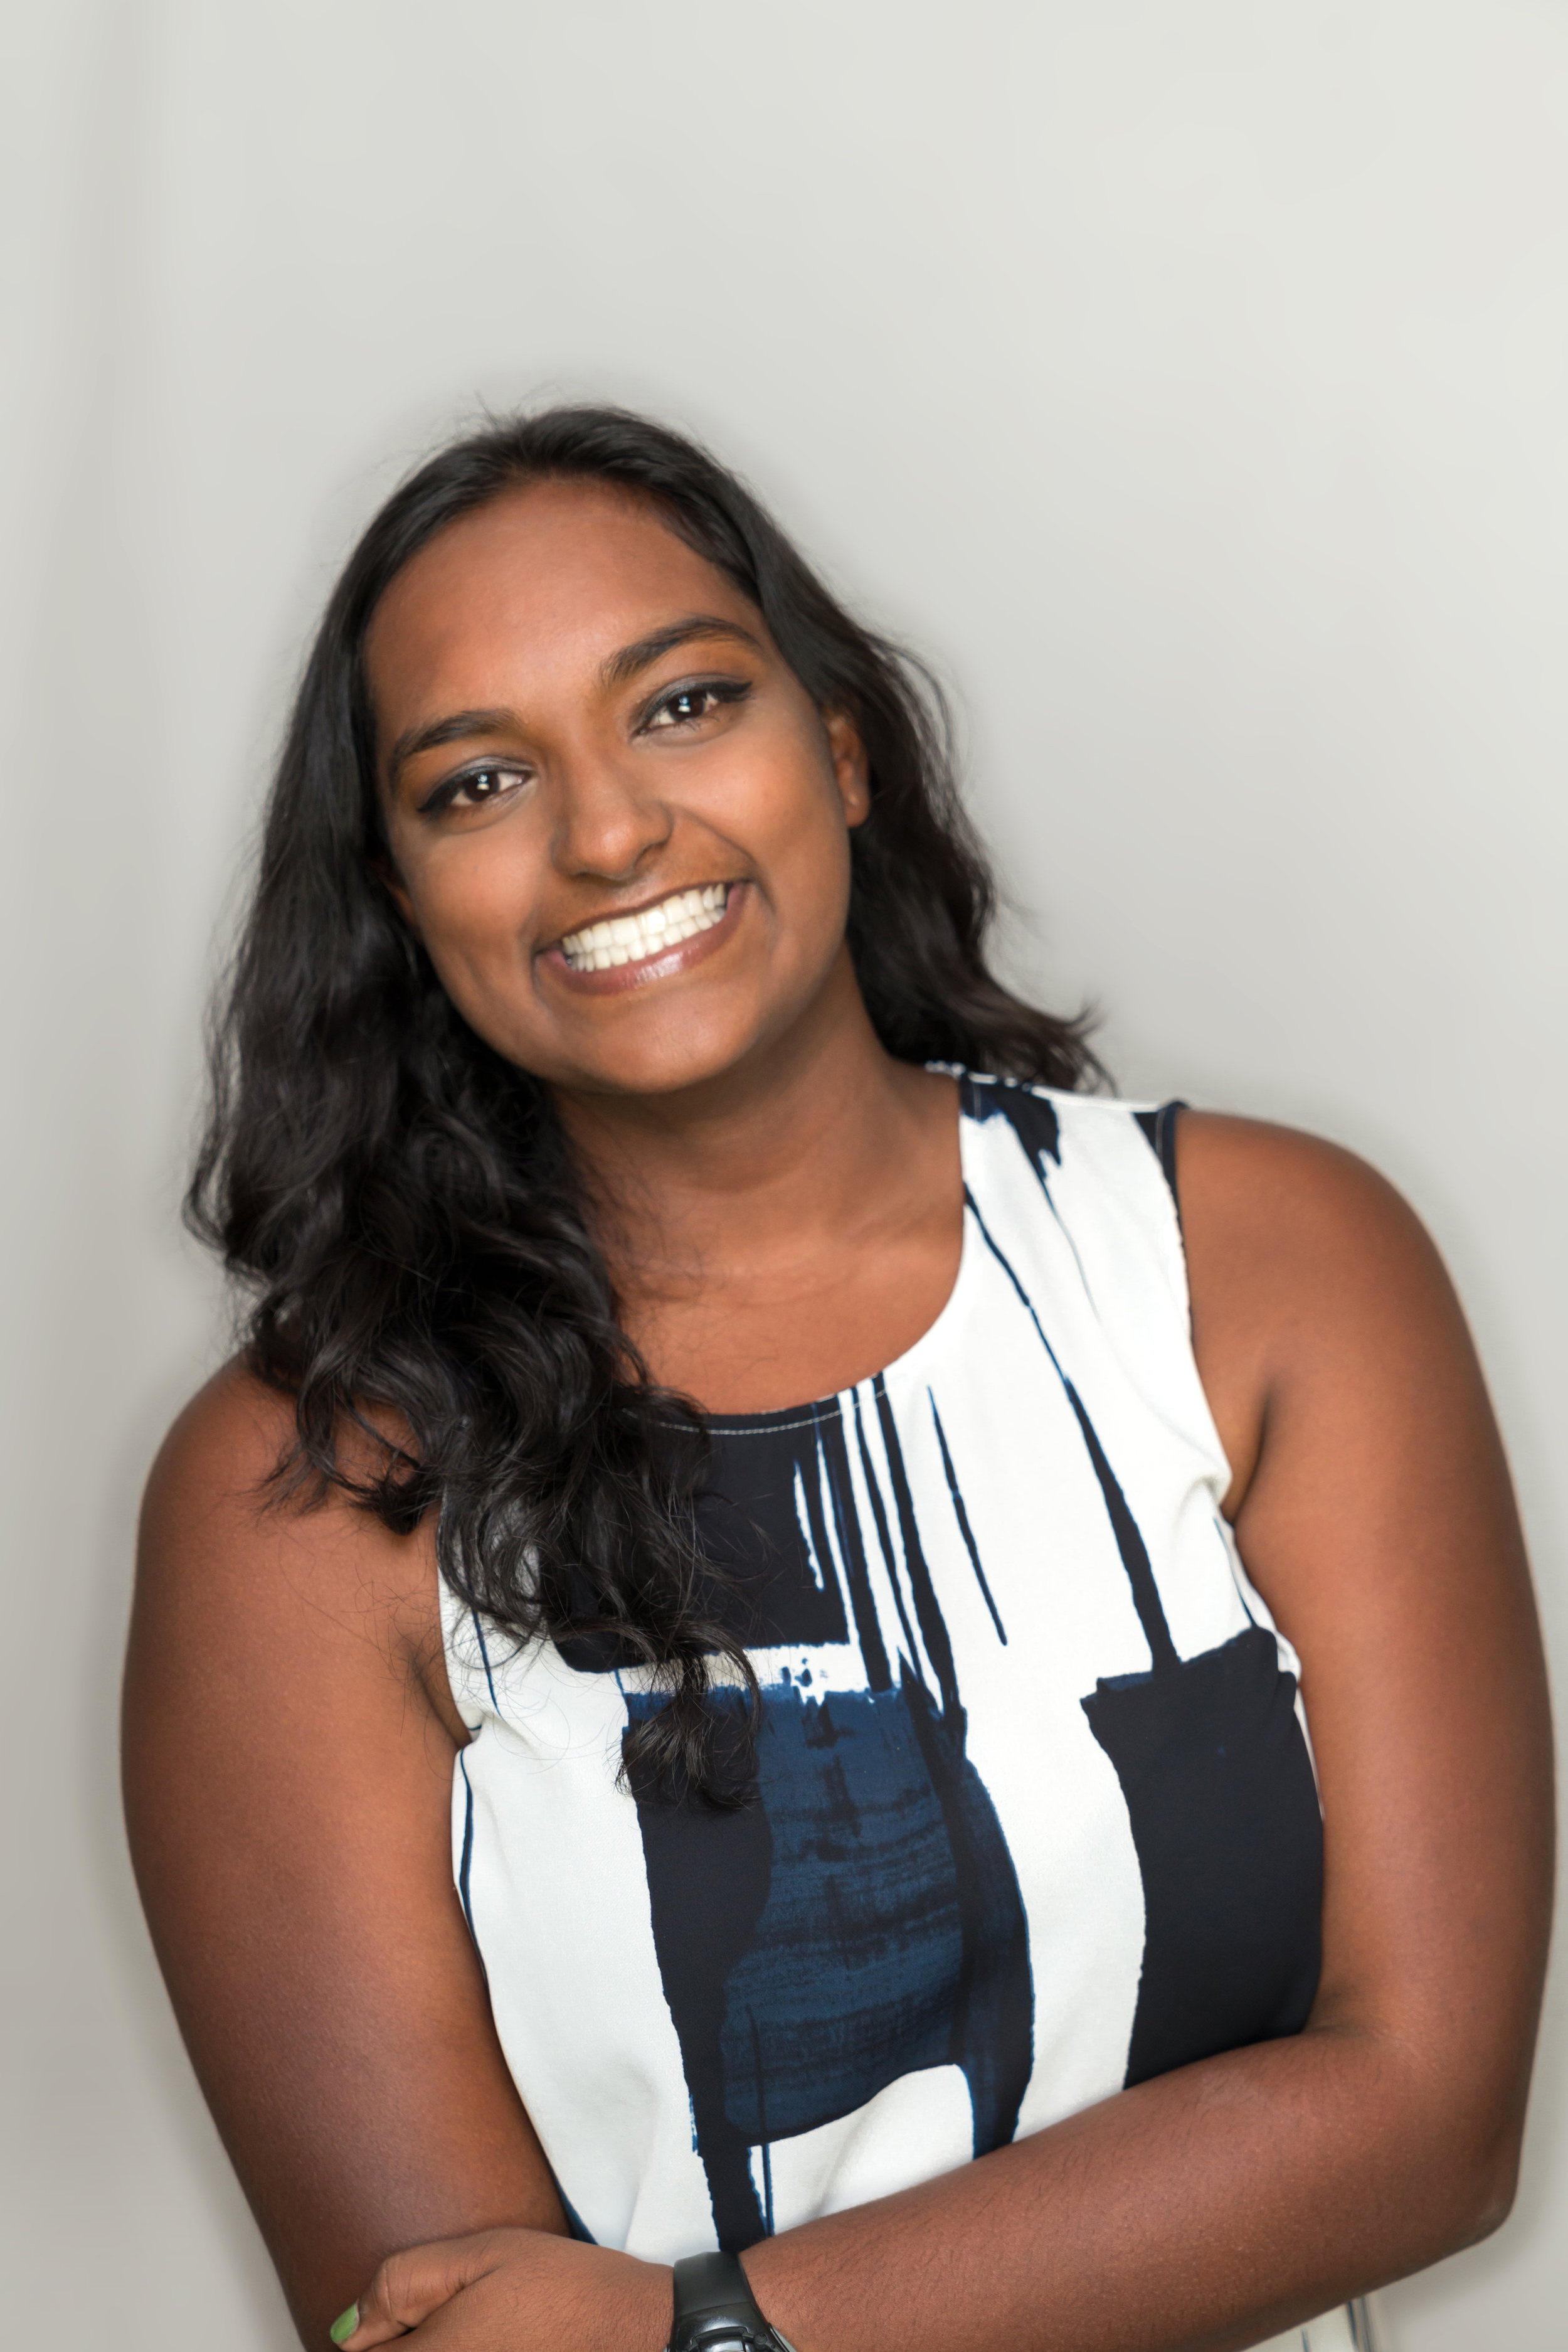 Ratheya Rajakumar   Major: Genetics and Genomics   Career Goal: Pediatrician